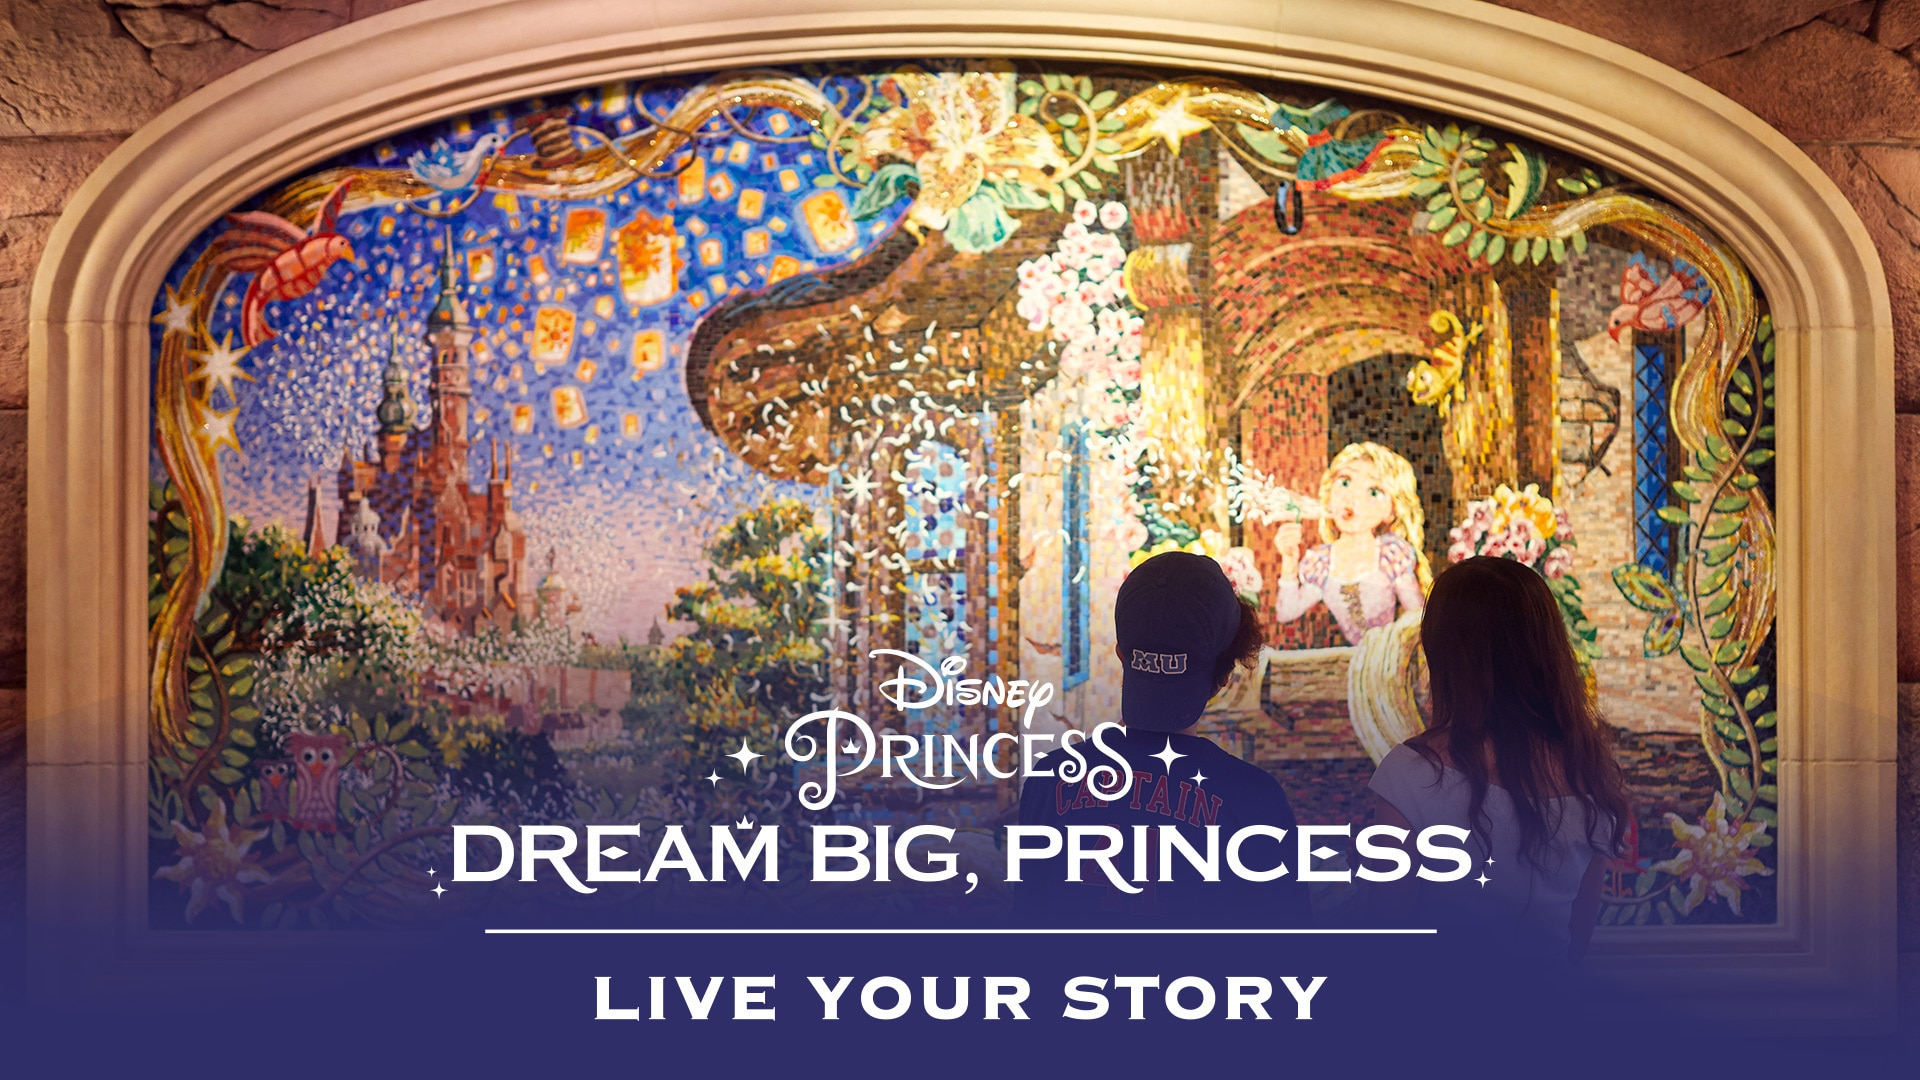 Dream Big, Princess - Xiaochun Meets Leia Mi | Disney